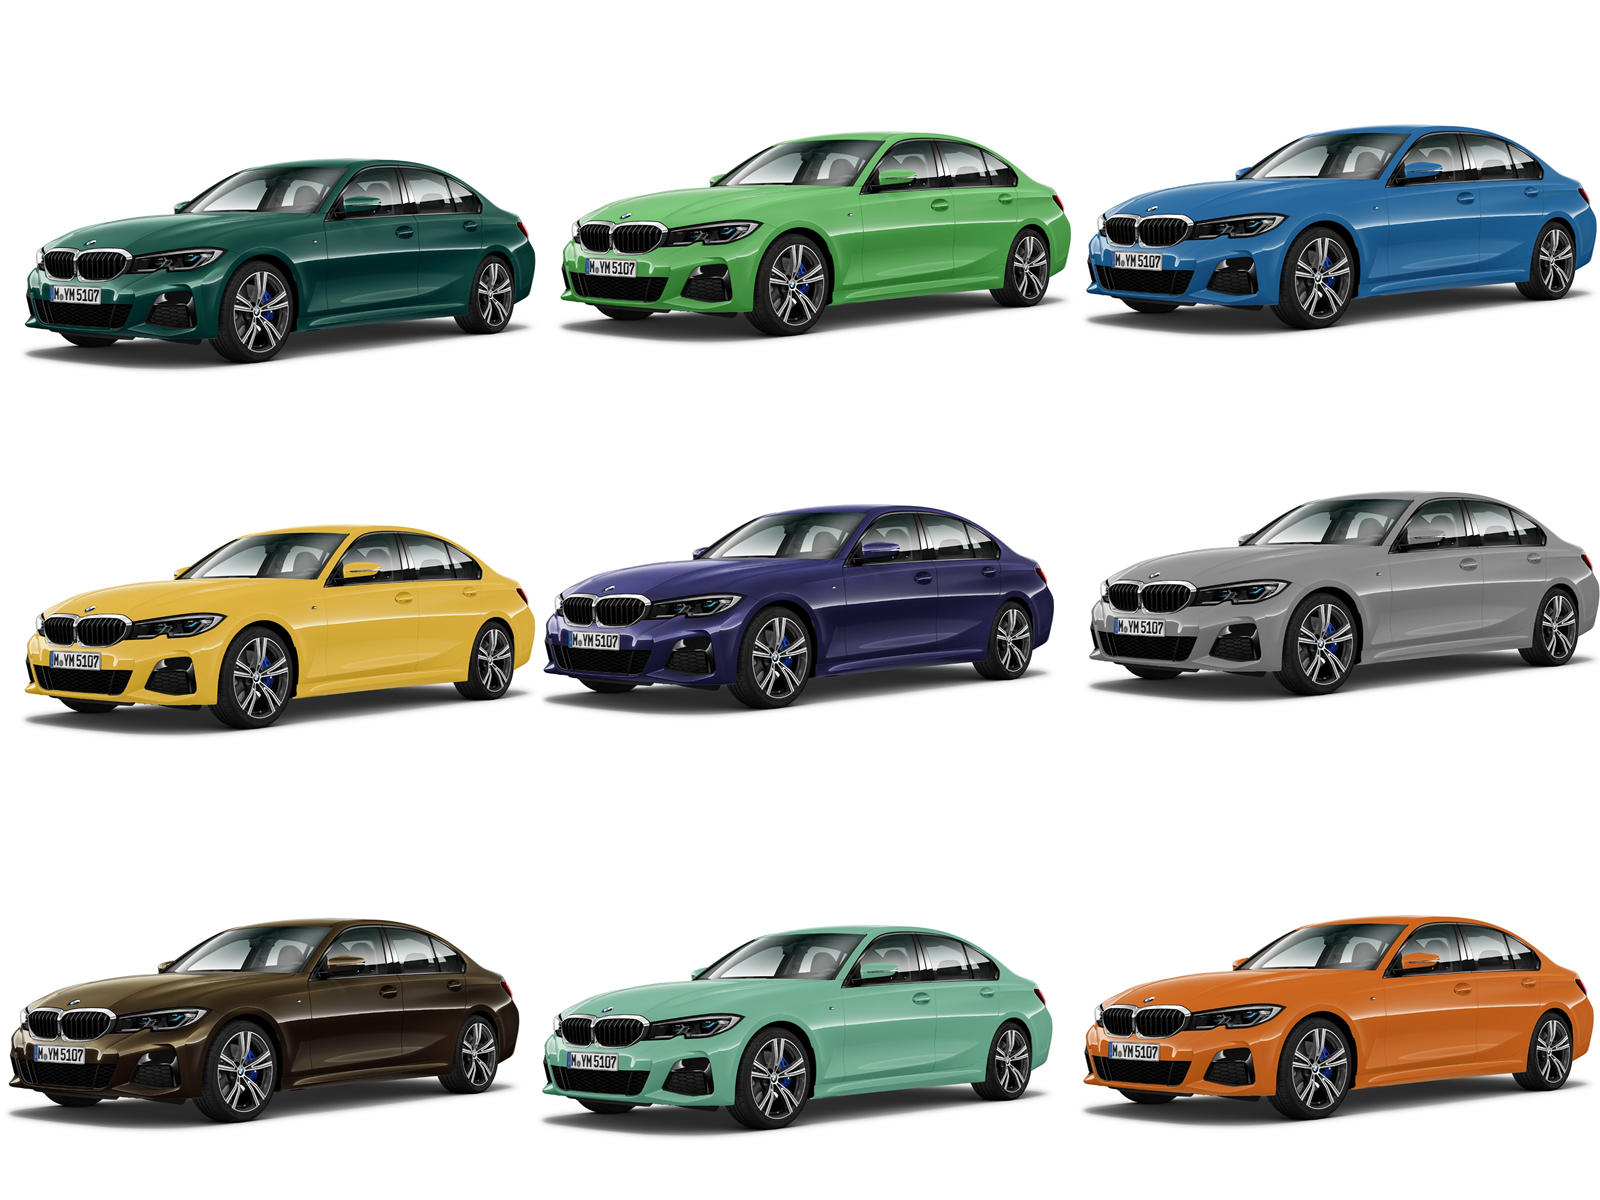 Ideas For A 2020 Bmw 320i Pics Check Out The Awesome Individual Paint Colors For The BMW 3 Series